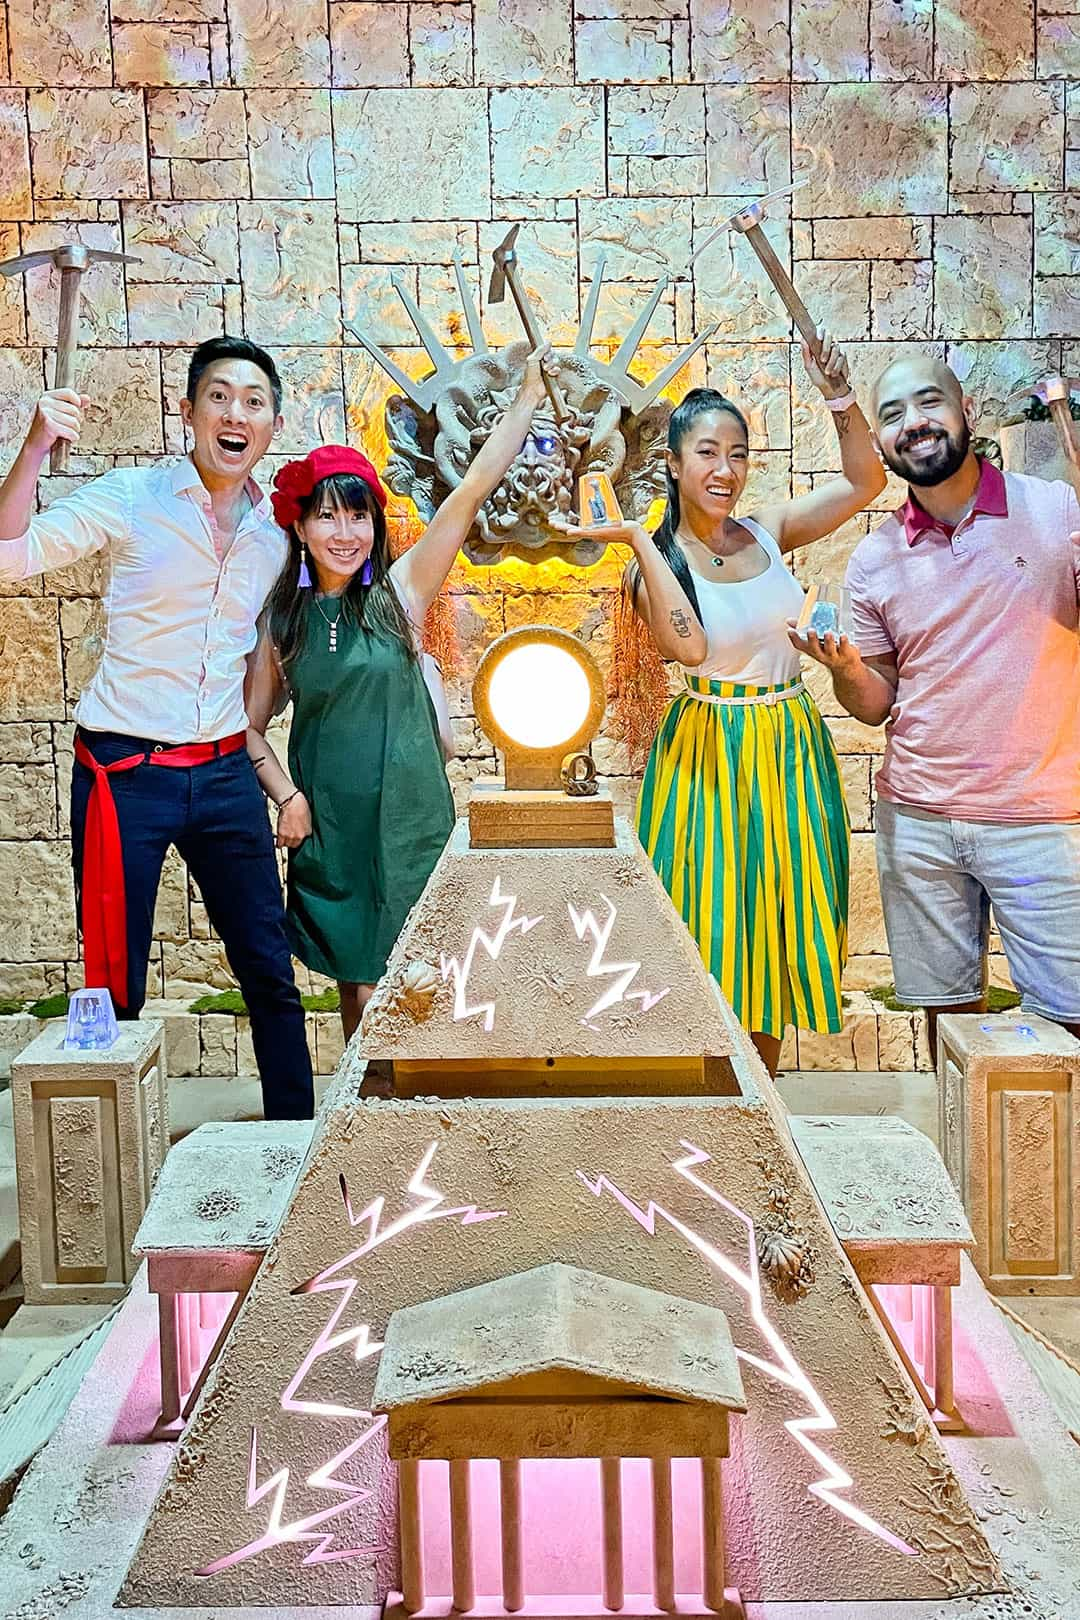 Paniq Escape Room Las Vegas - Best Things to Do at the Venetian